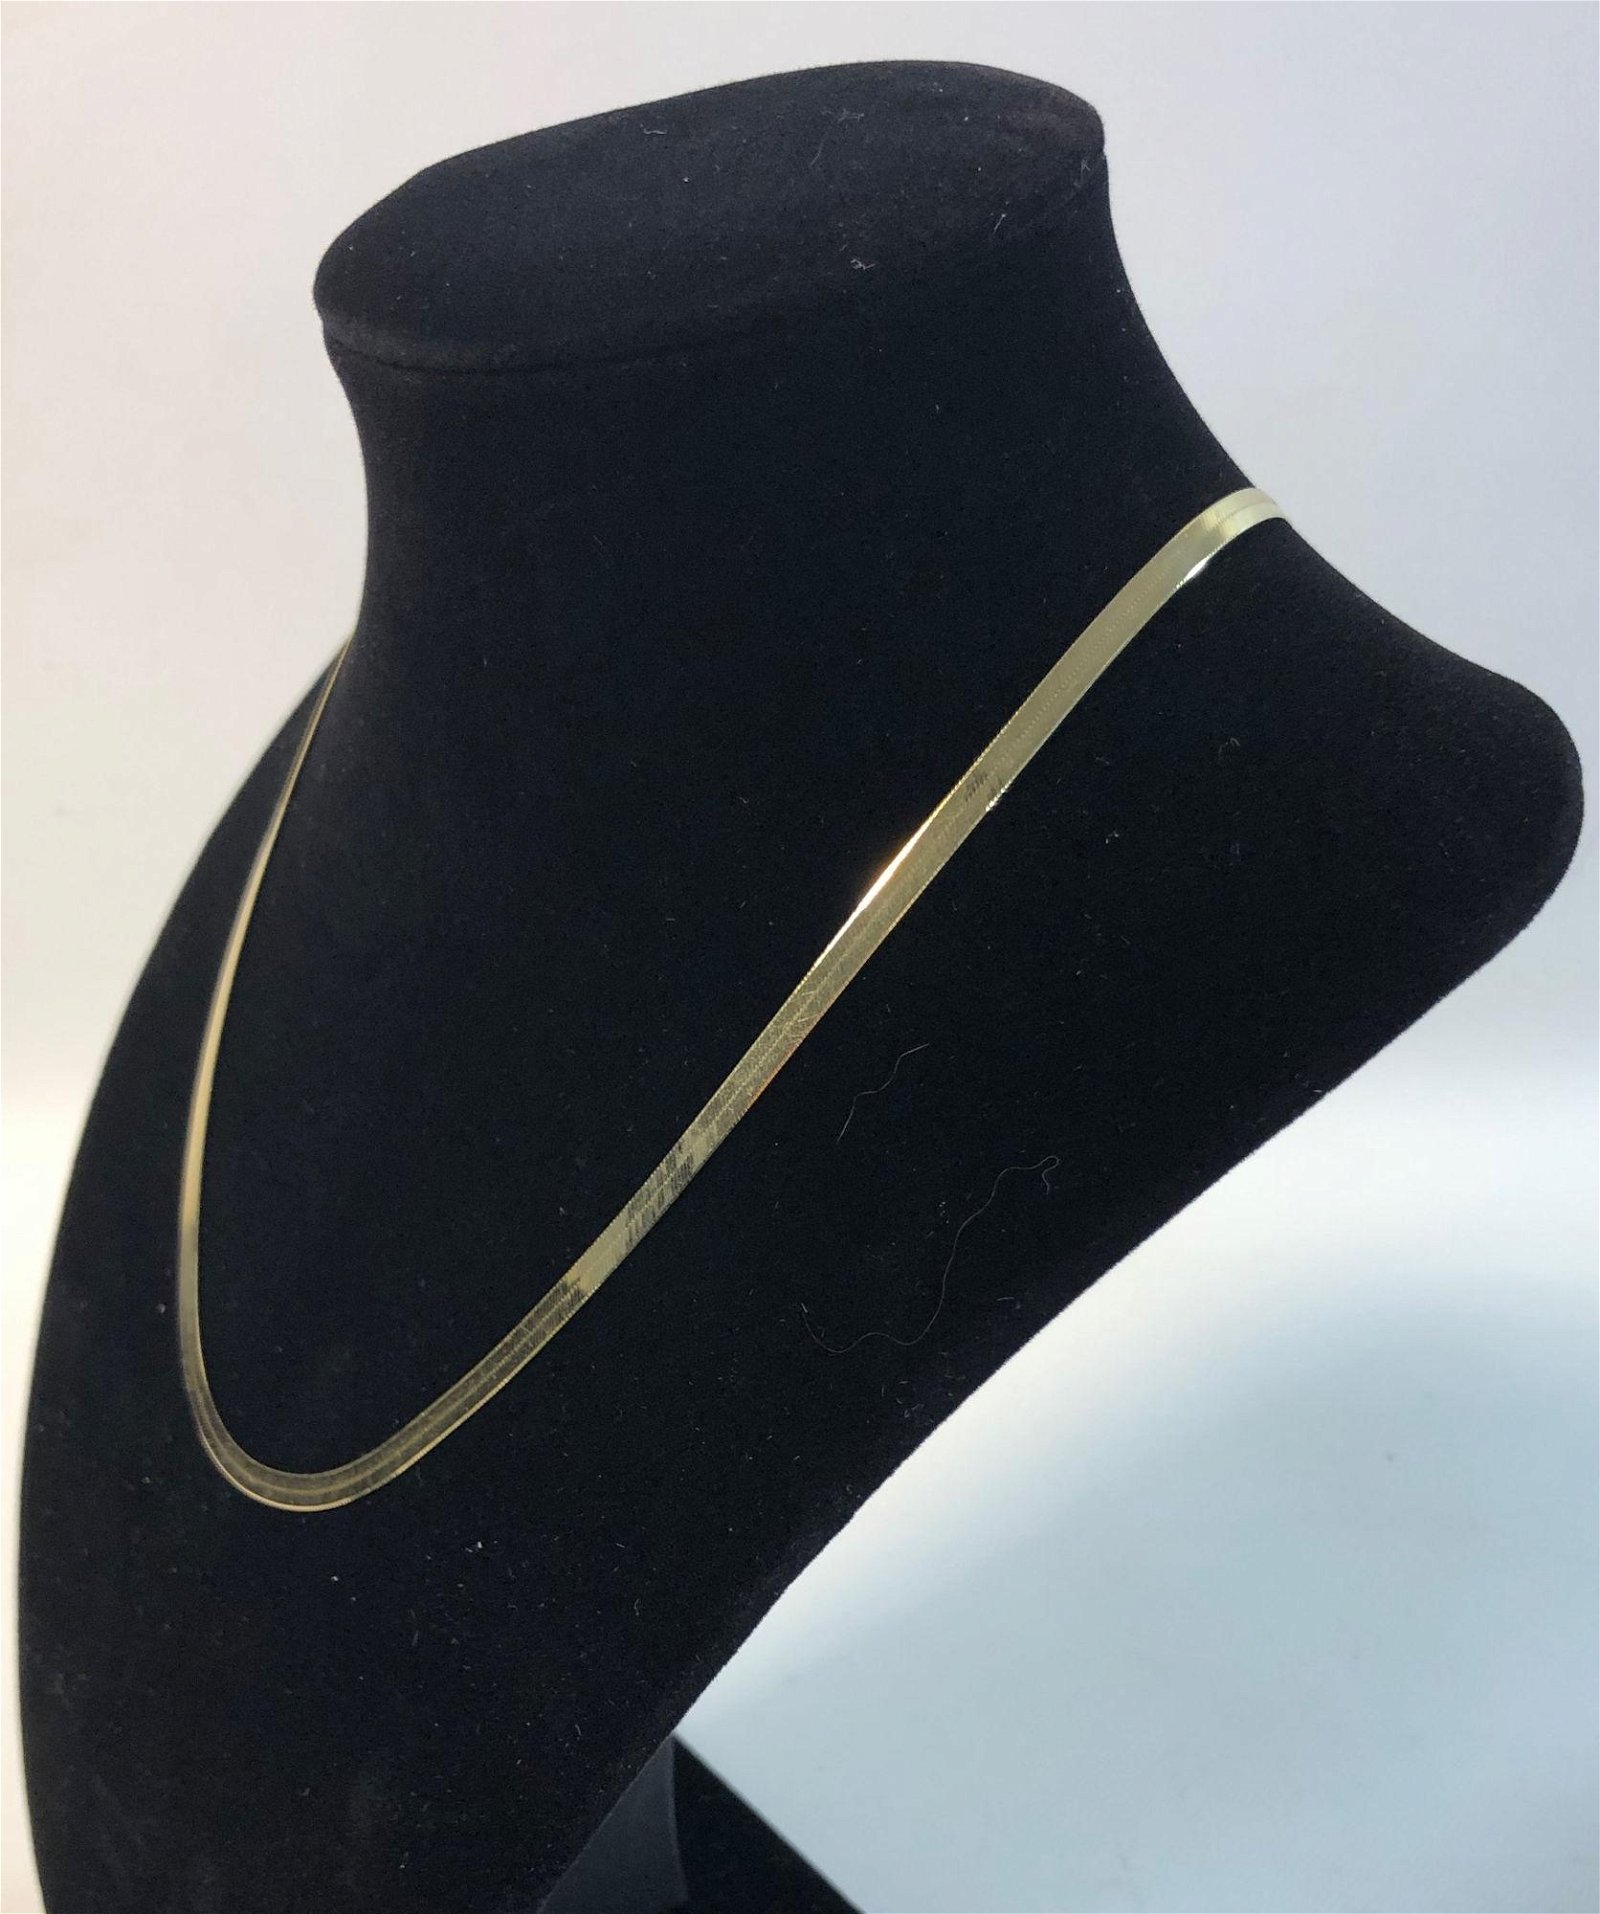 14 KT YELLOW GOLD NECKLACE